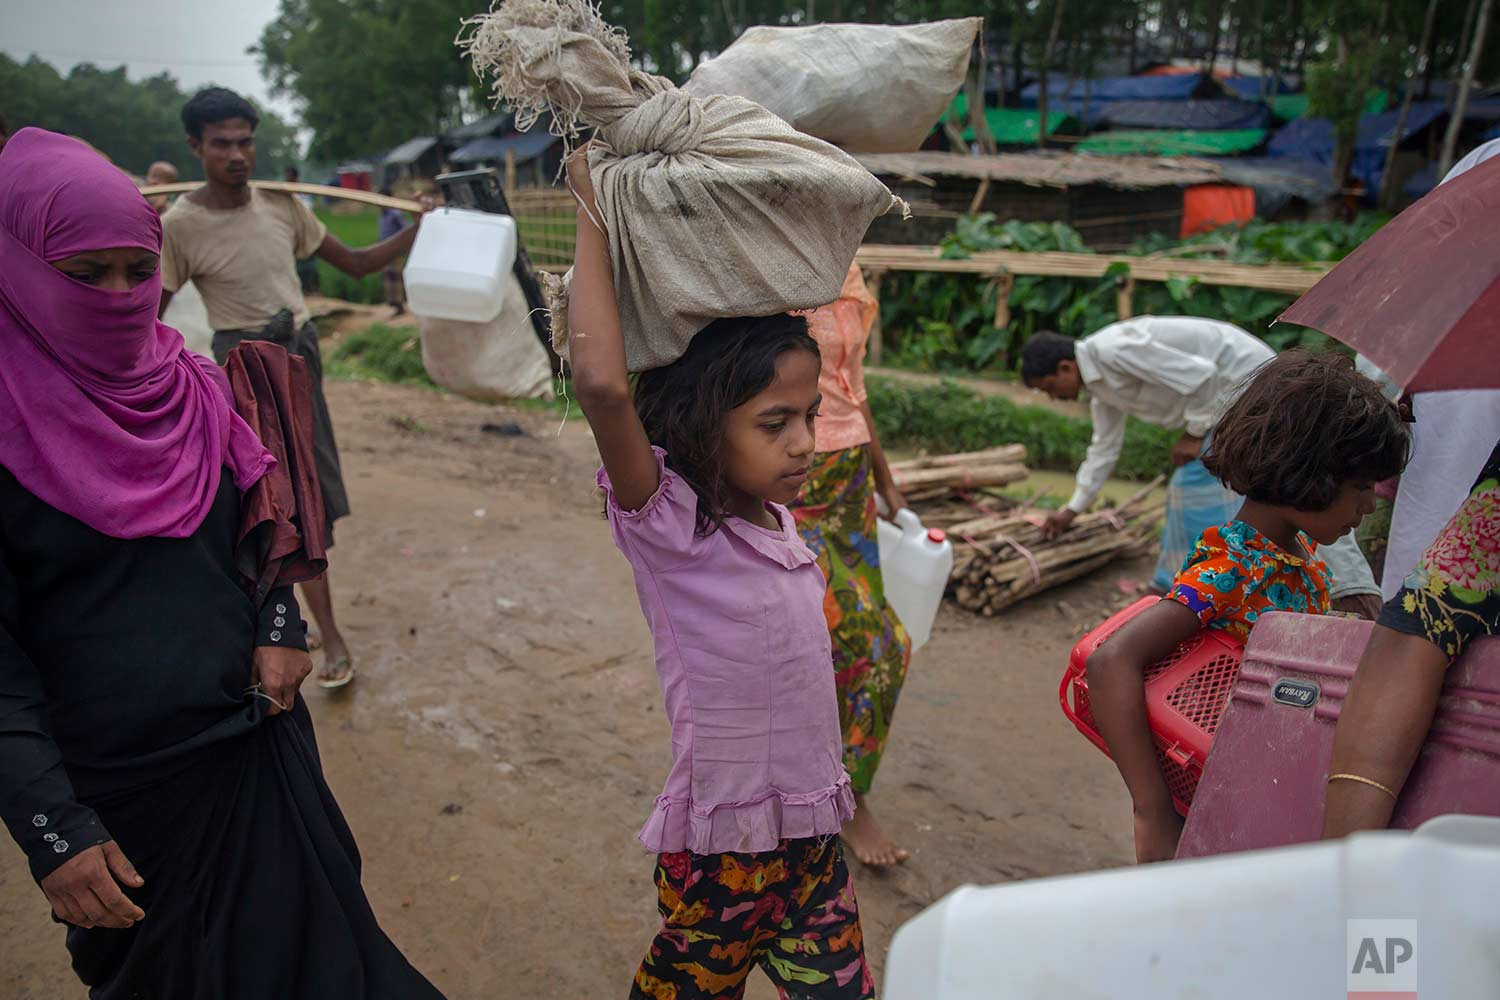 A newly arrived Rohingya Muslim girl, who crossed over from Myanmar into Bangladesh, walks carrying her belongings near Kutupalong refugee camp, Bangladesh, Friday, Oct. 20, 2017. (AP Photo/Dar Yasin)